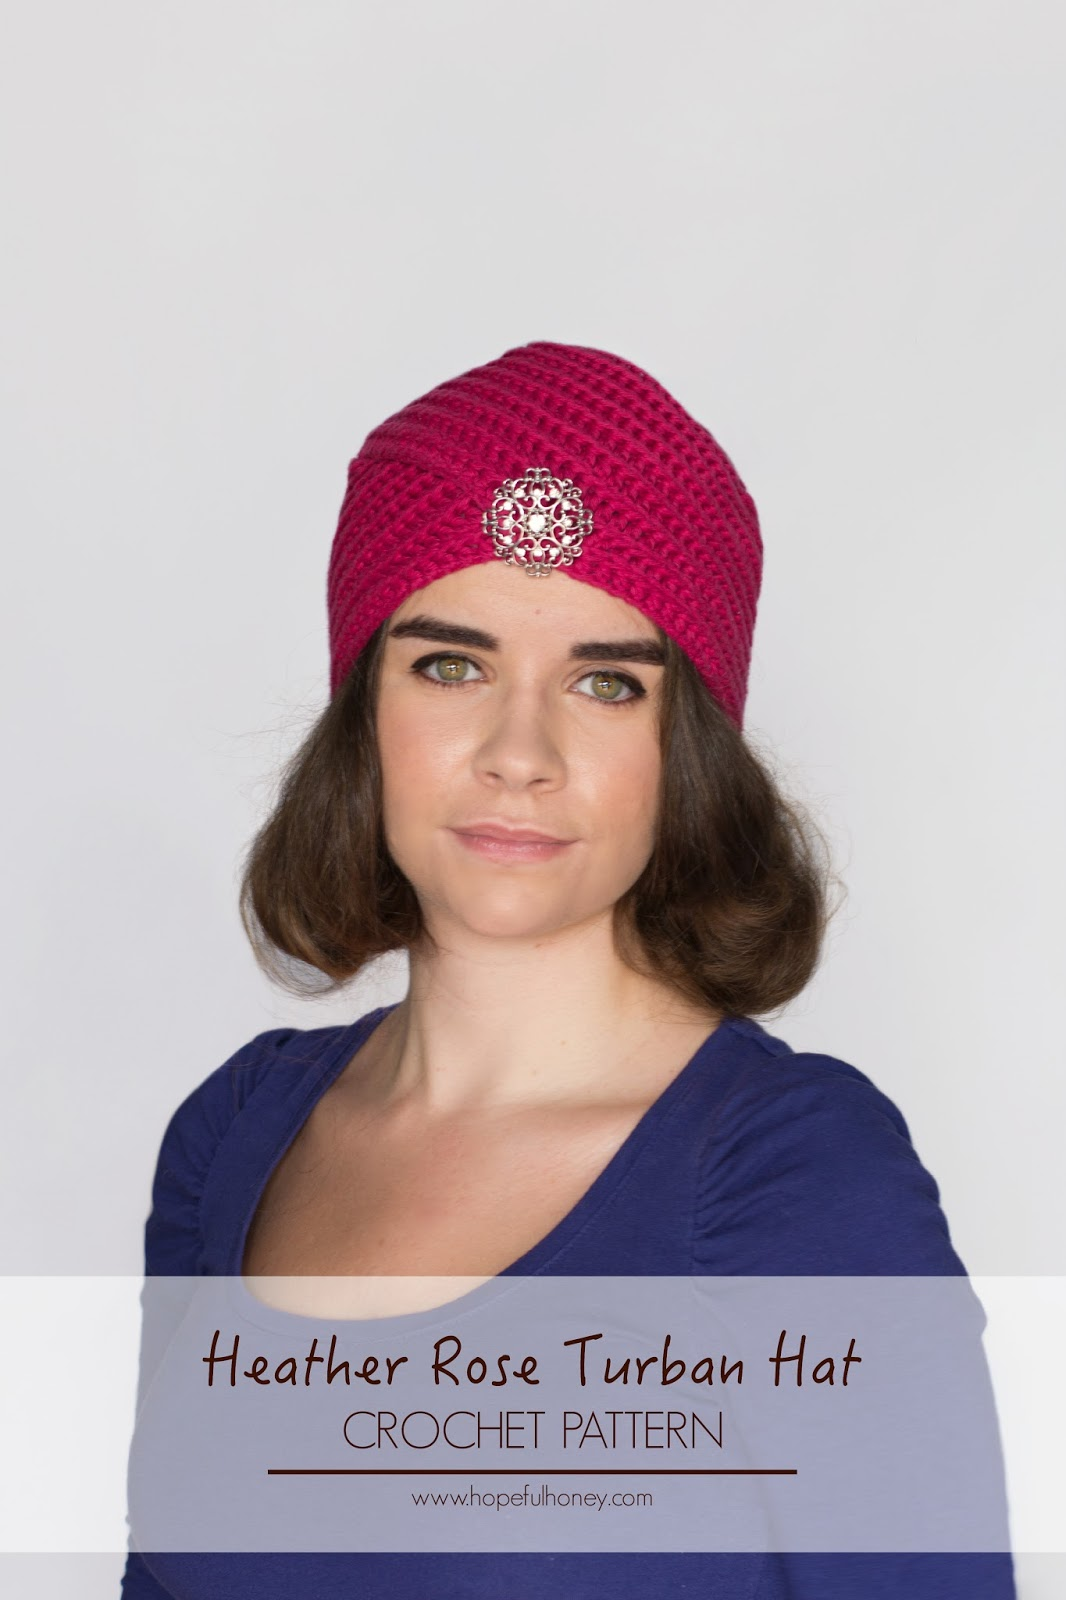 Crochet Pattern Turban Hat : Hopeful Honey Craft, Crochet, Create: Heather Rose ...